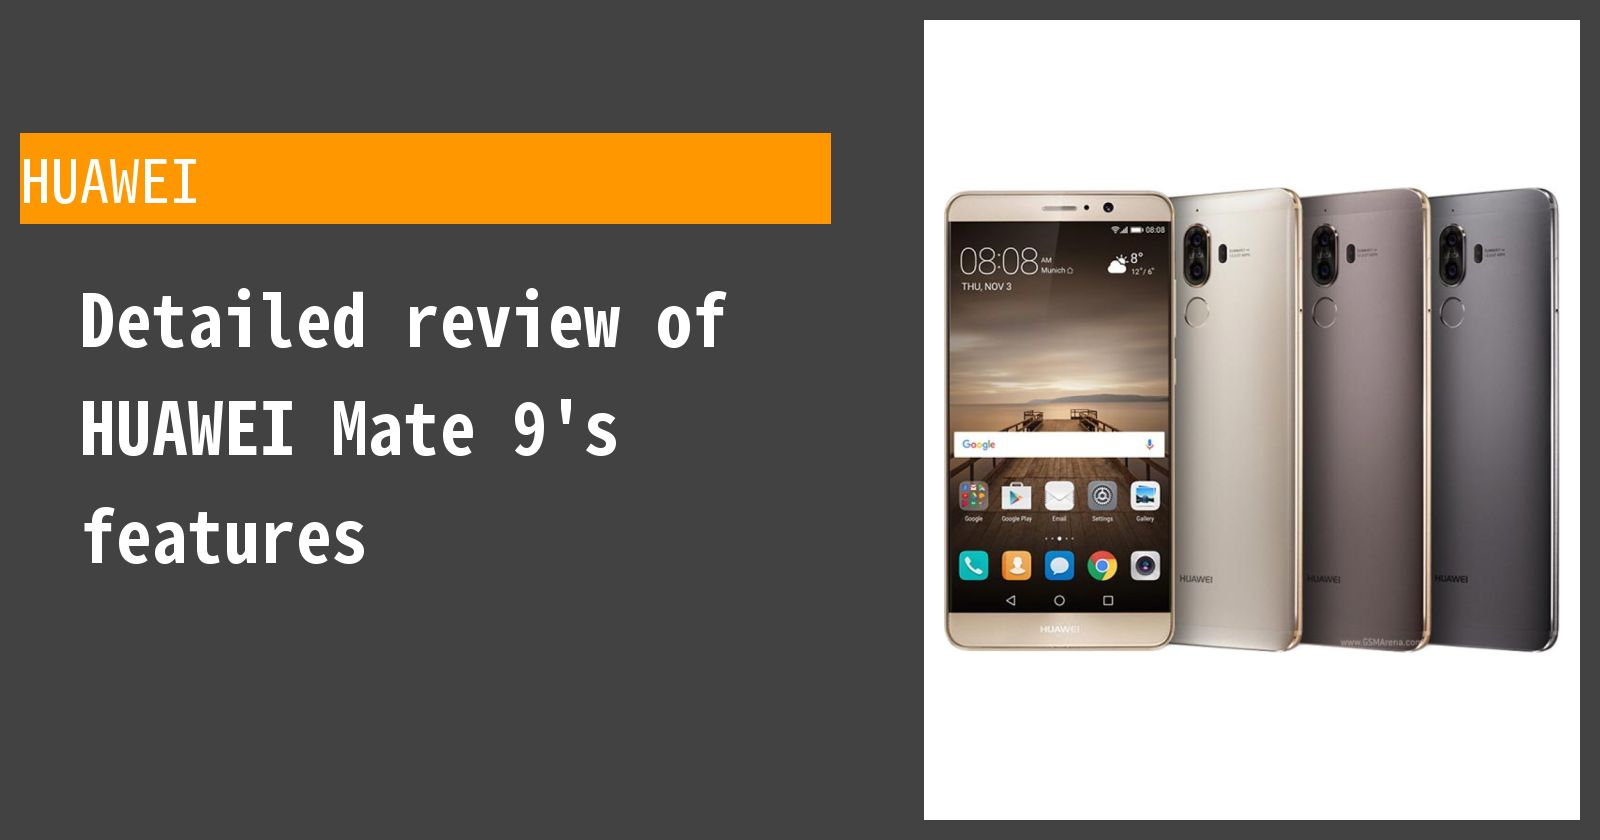 Detailed review of HUAWEI Mate 9's features